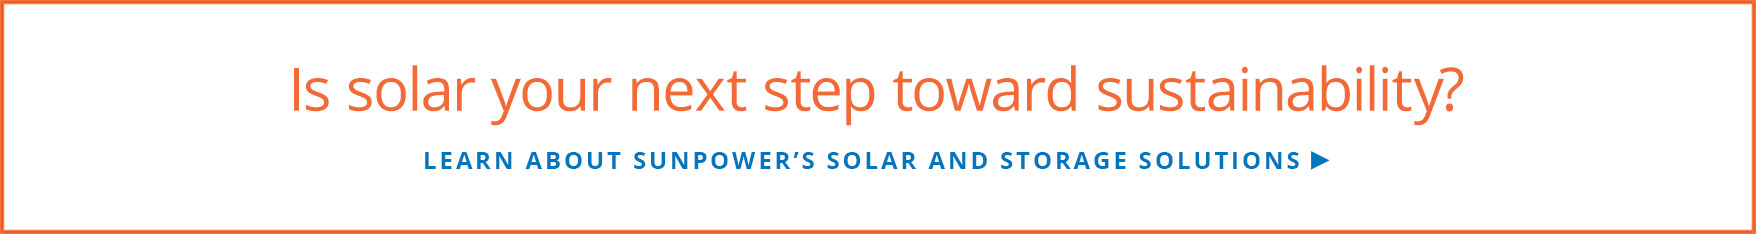 Learn about Sunpowers solar and storage solutions